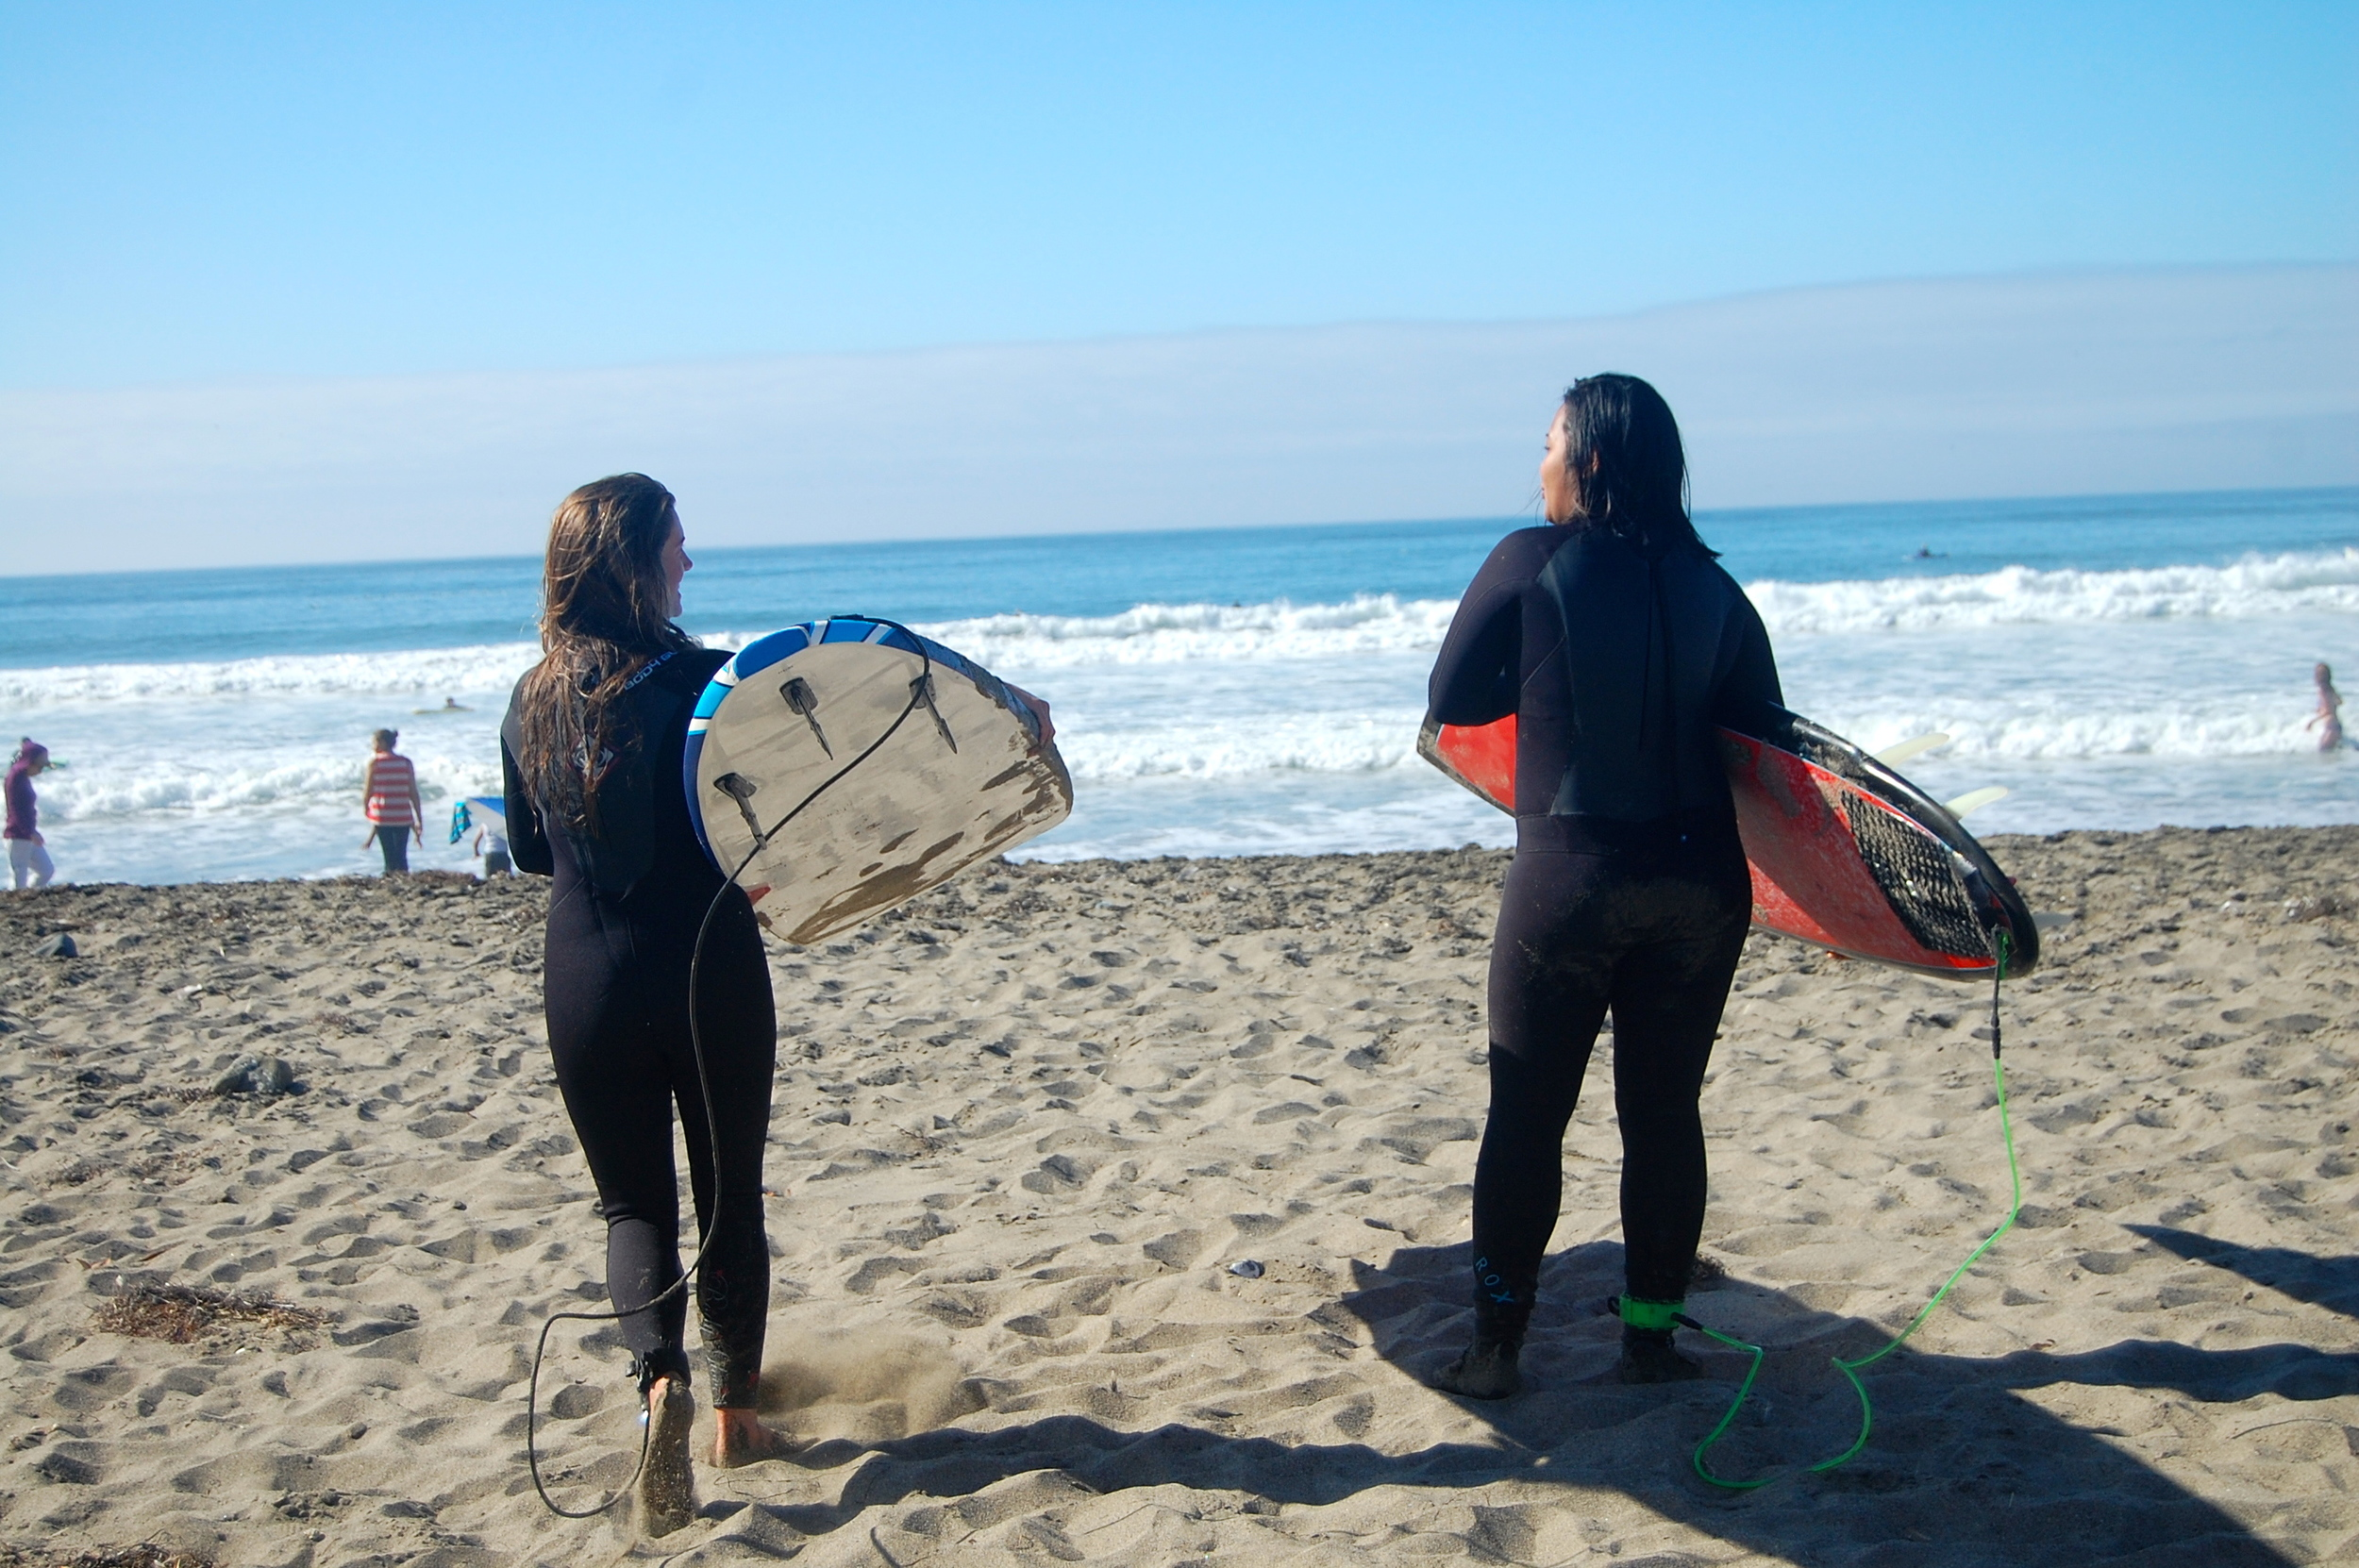 Brie & Ahline become surf buddies!